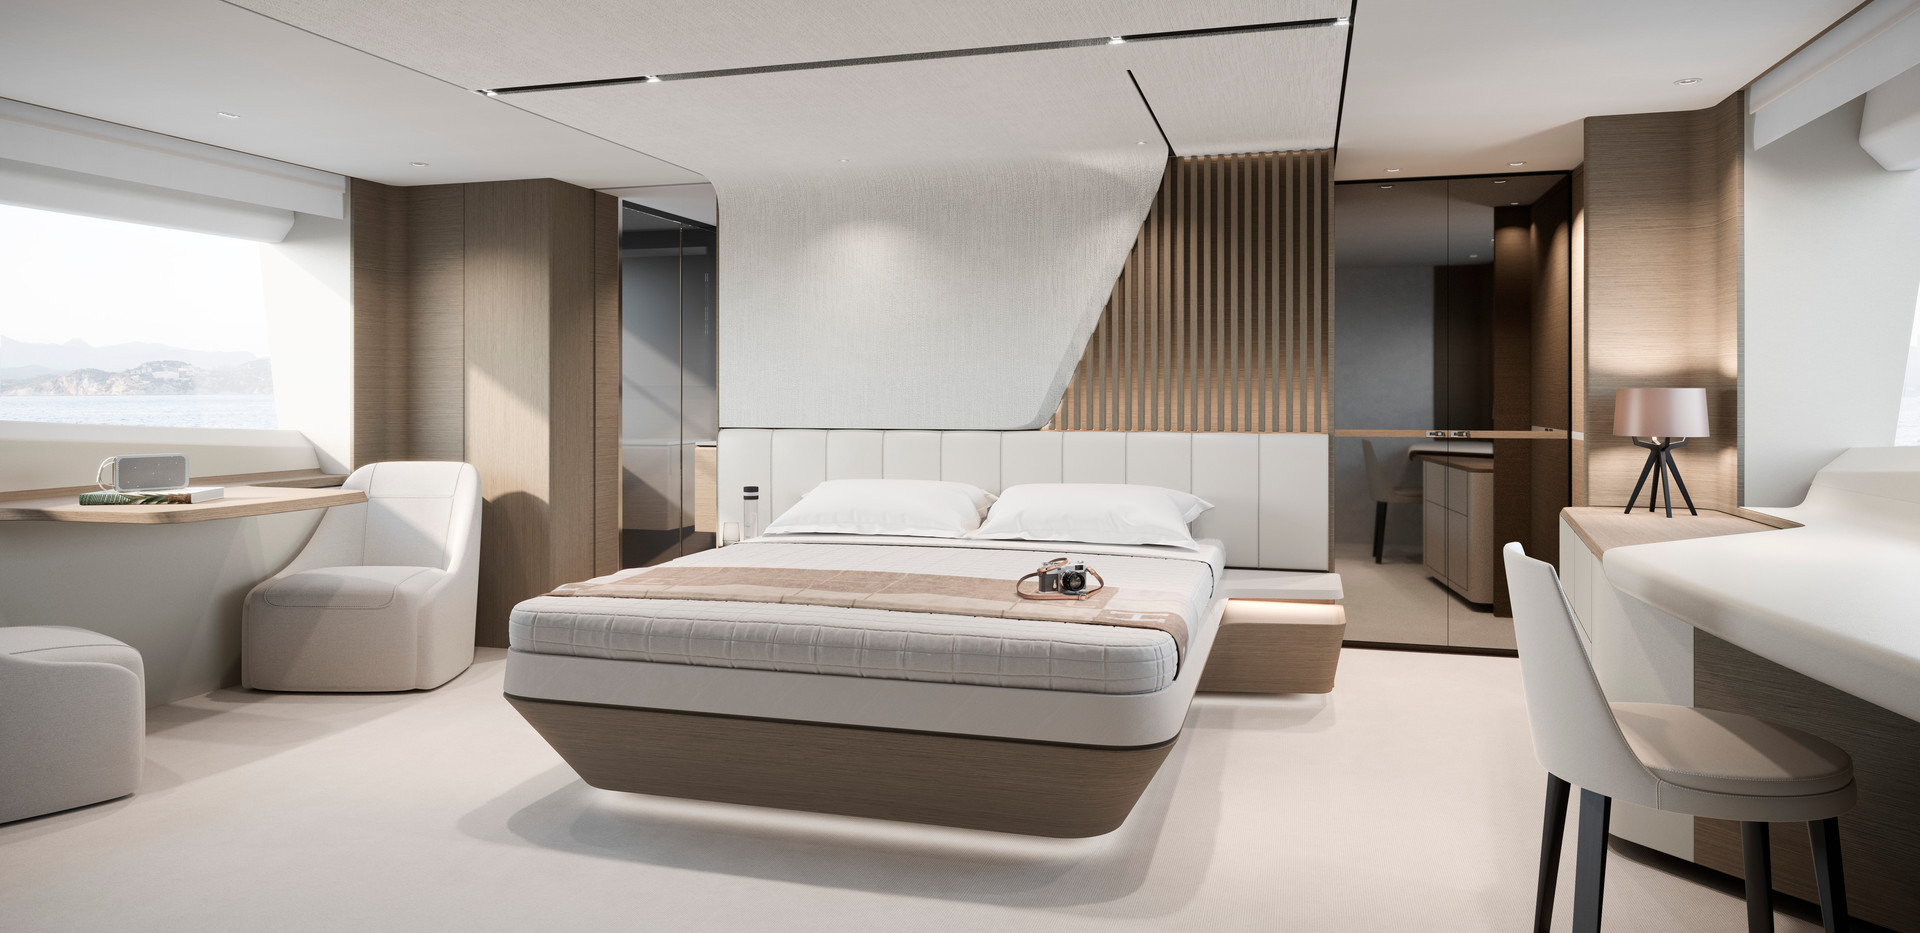 y85-interior-owners-stateroom-cgi-silver